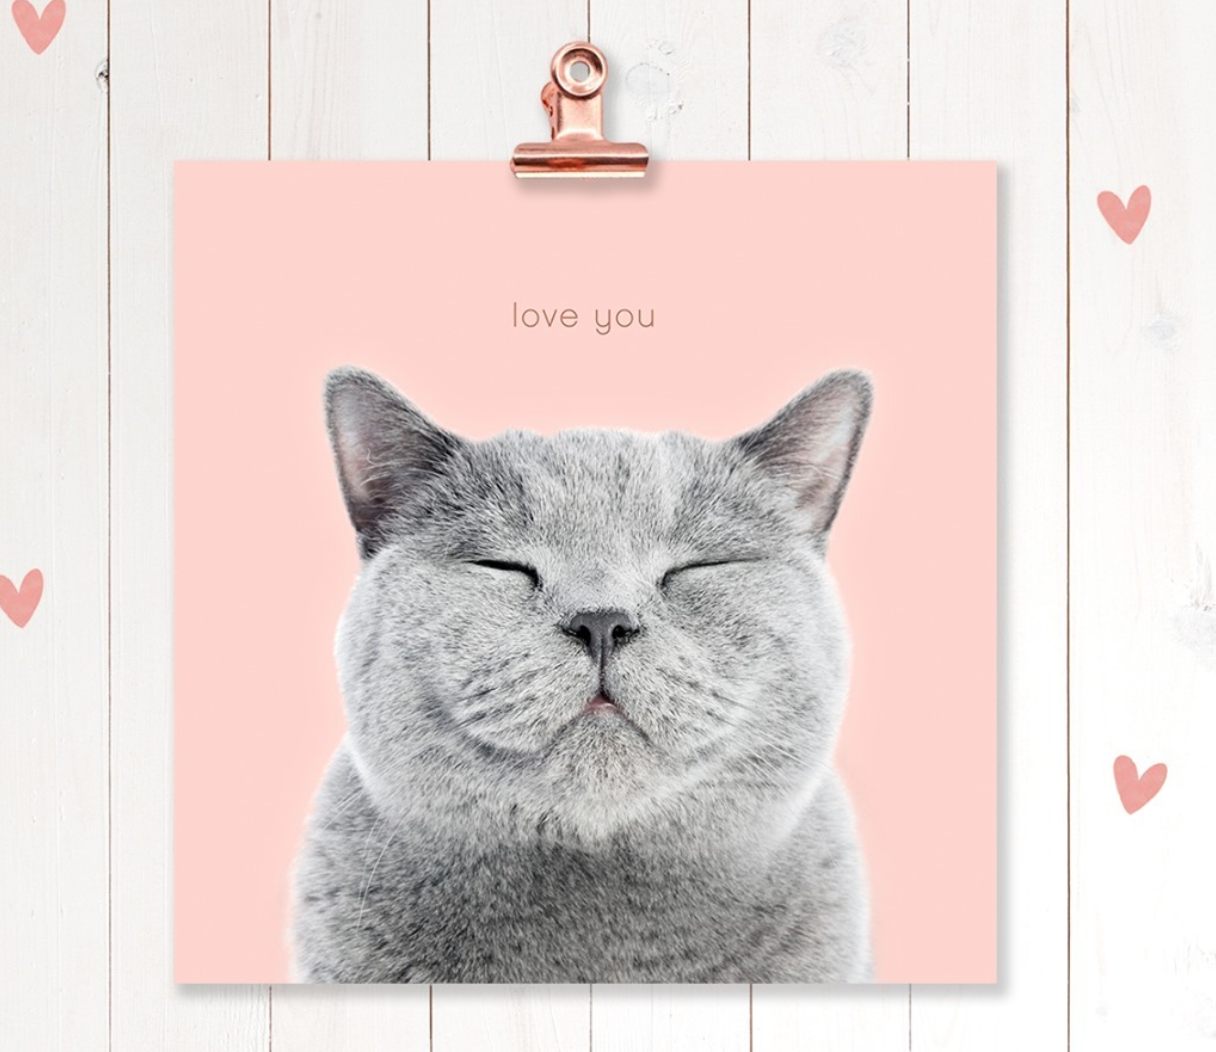 Above: One of the adorable Valentine's Day designs from UK Greetings that it has posted on social media.